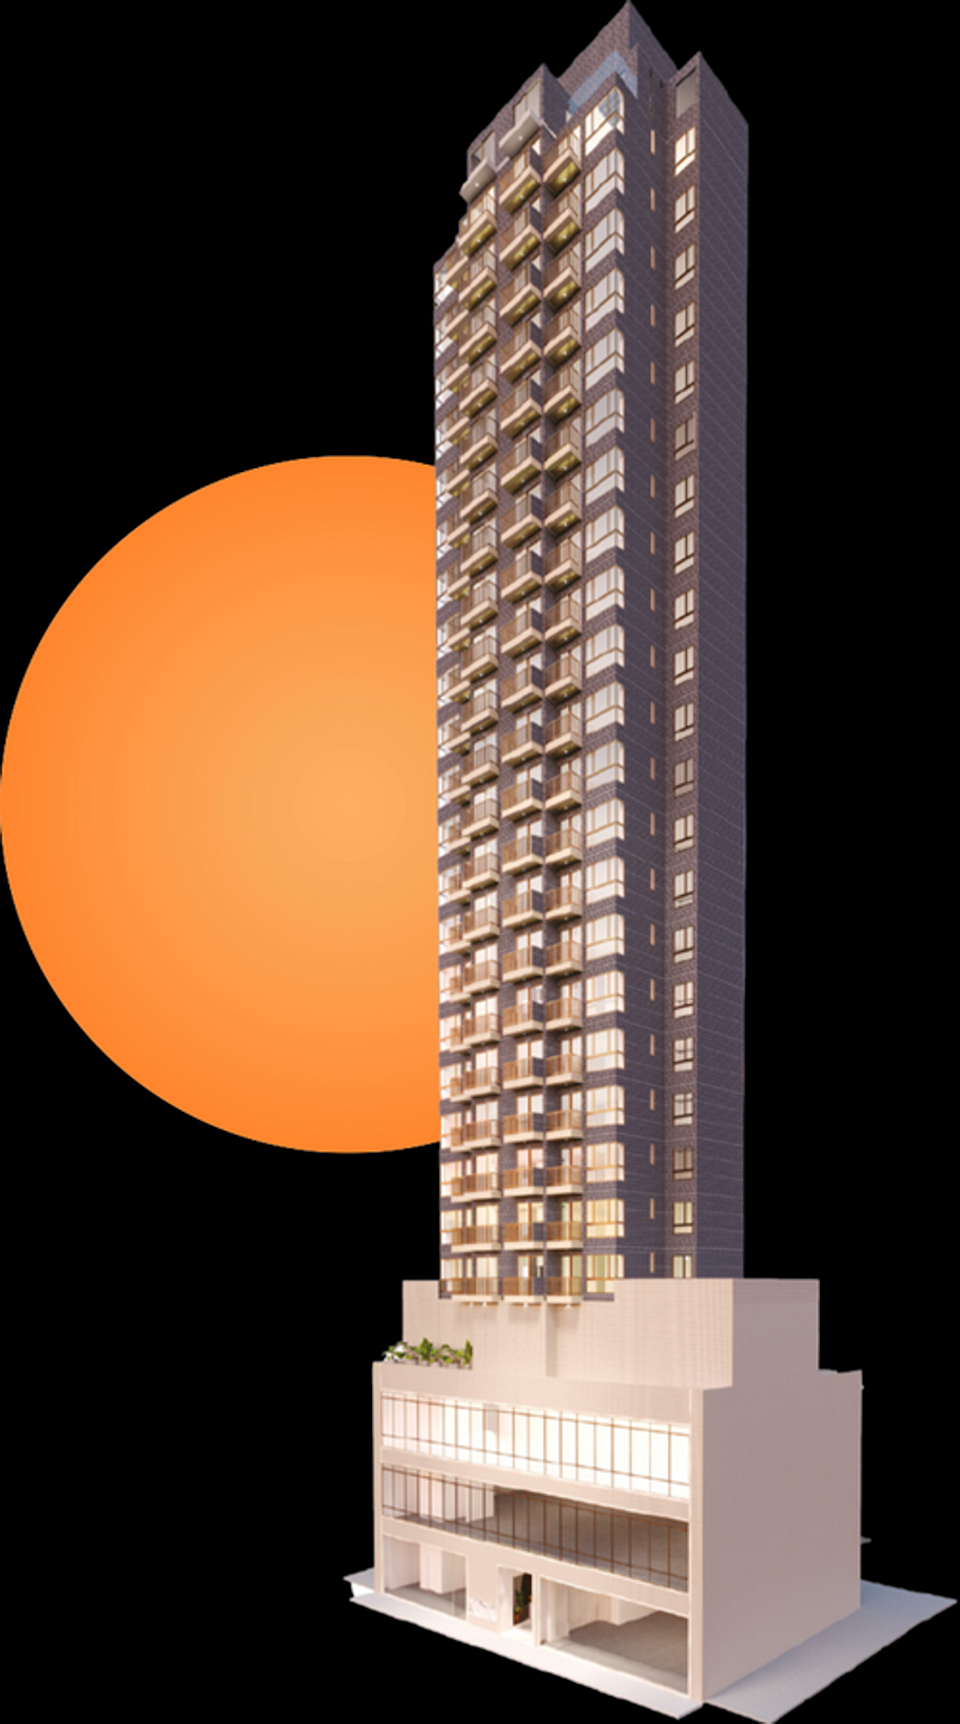 Artist's impression of the Mangrove housing complex in Hung Hom. Photo: Kwai Hung Group